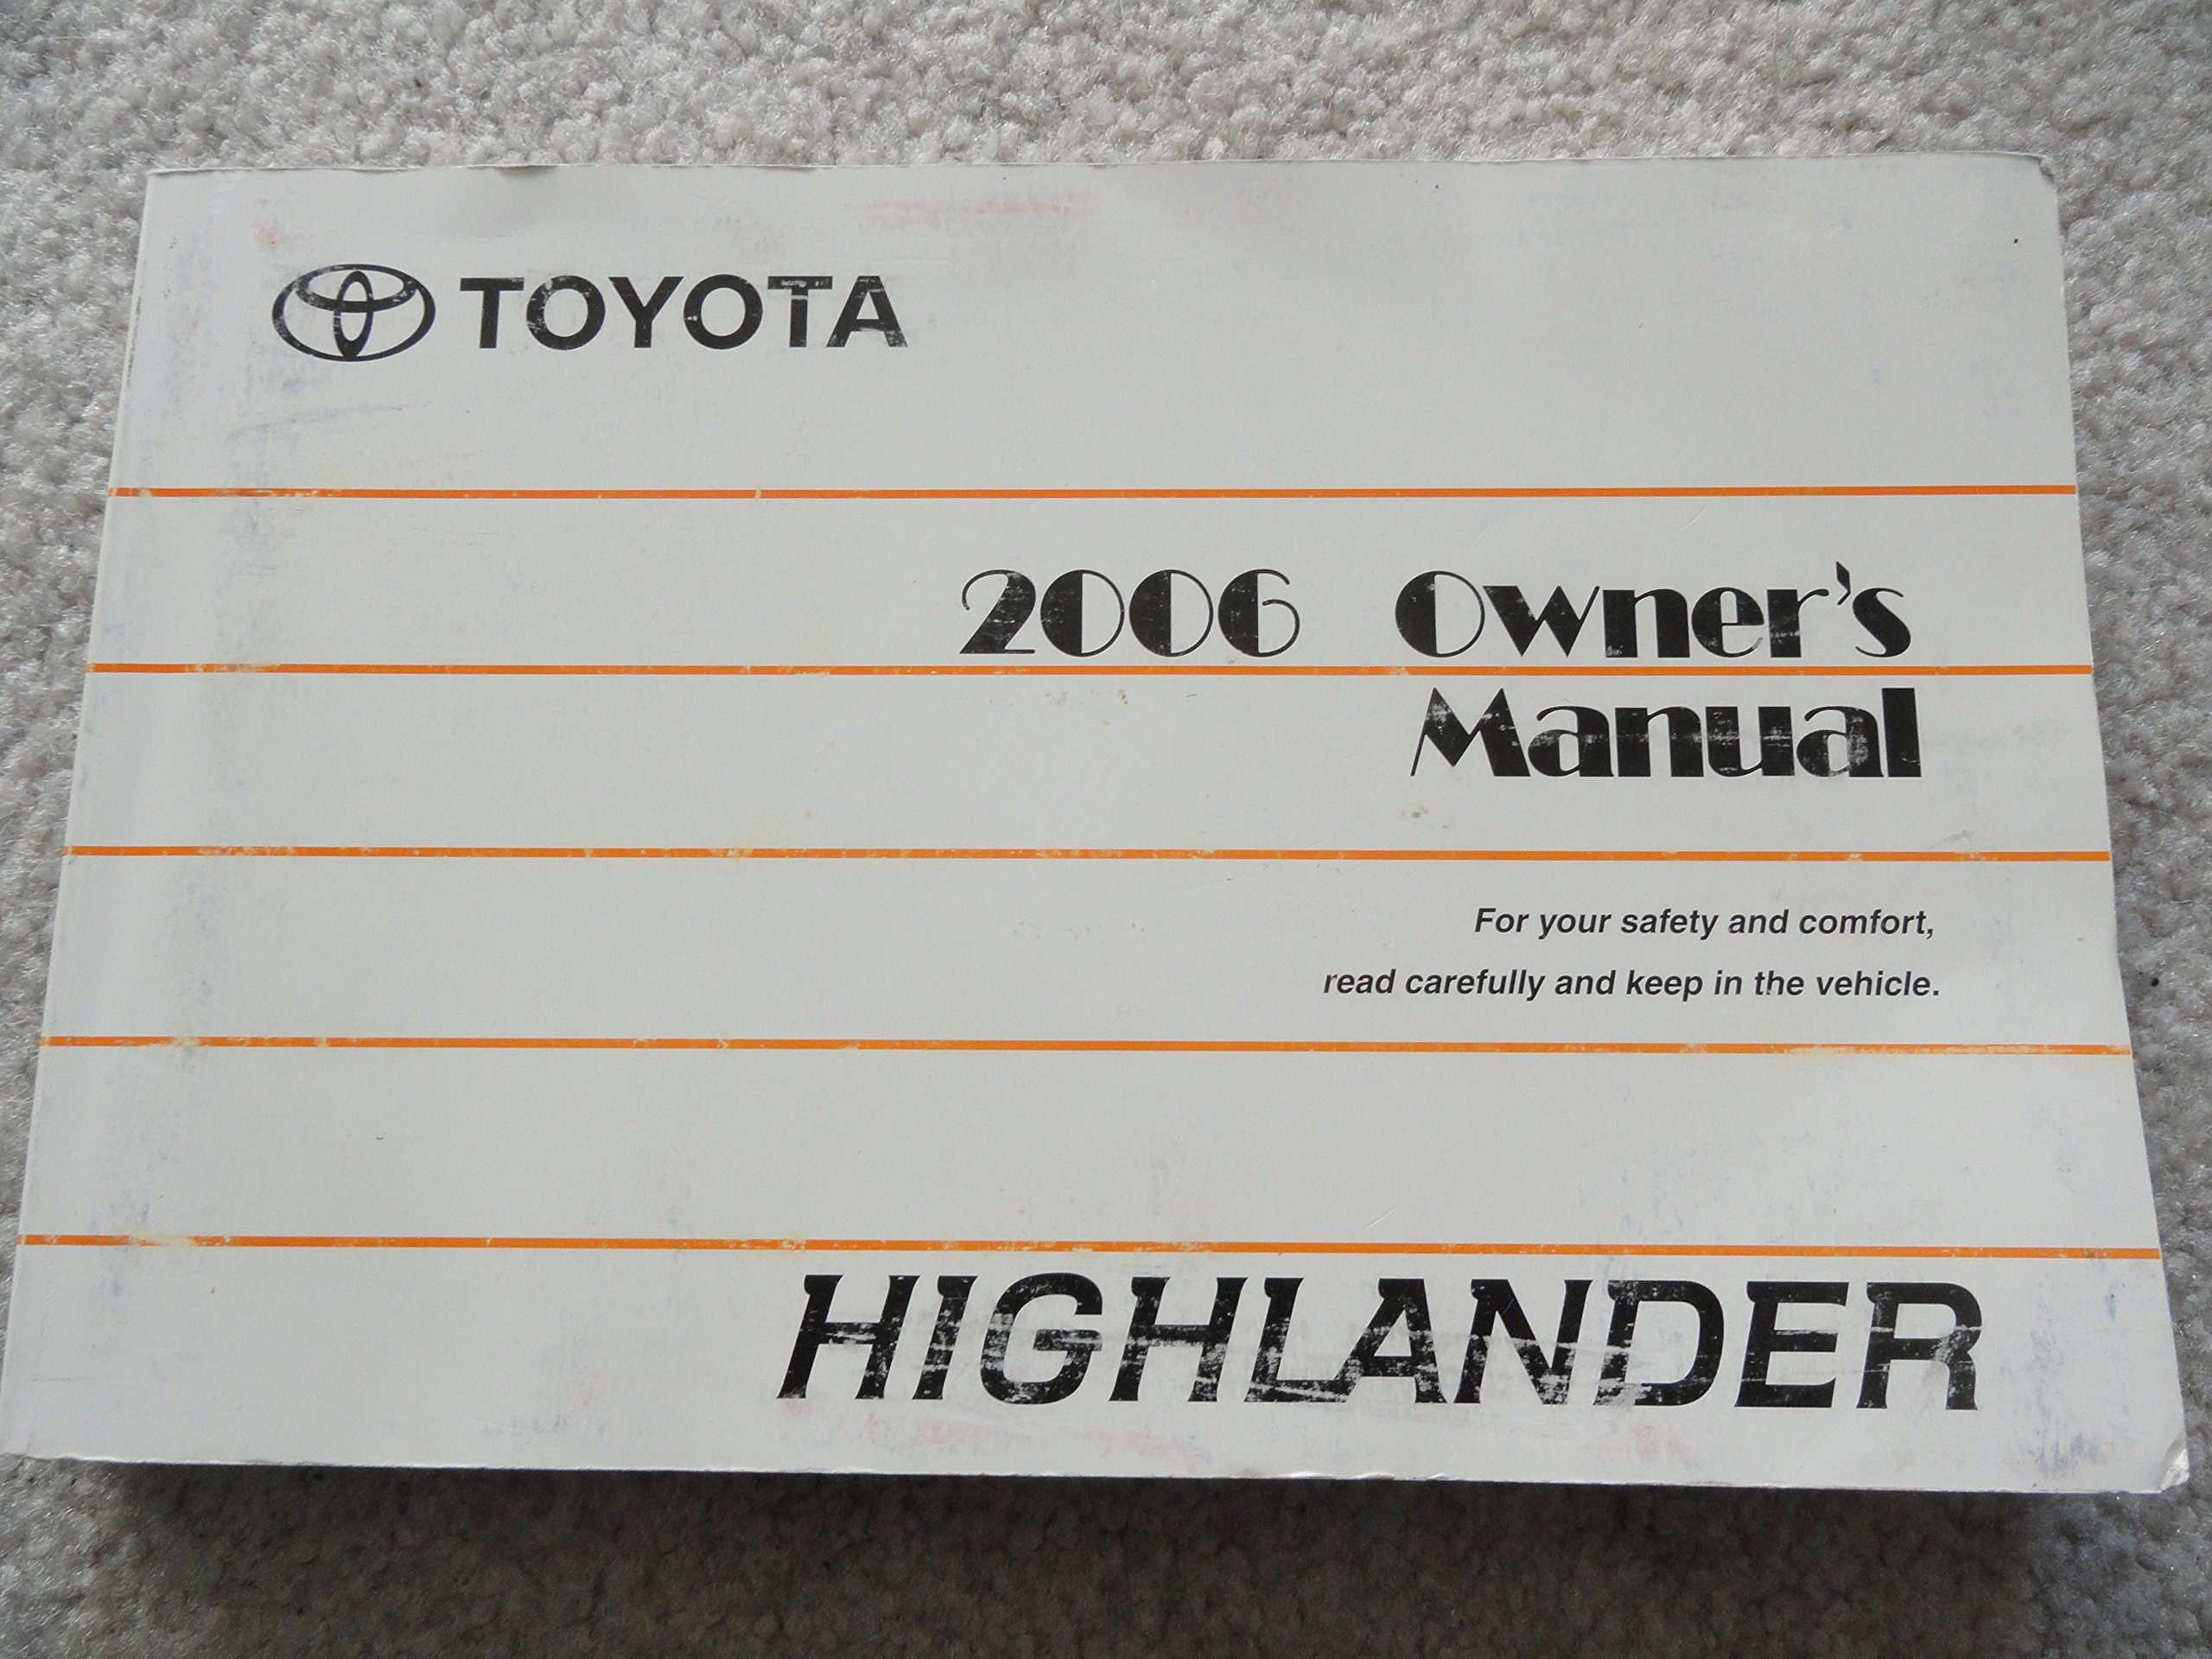 Toyota Highlander Owners Manual: Personal lights